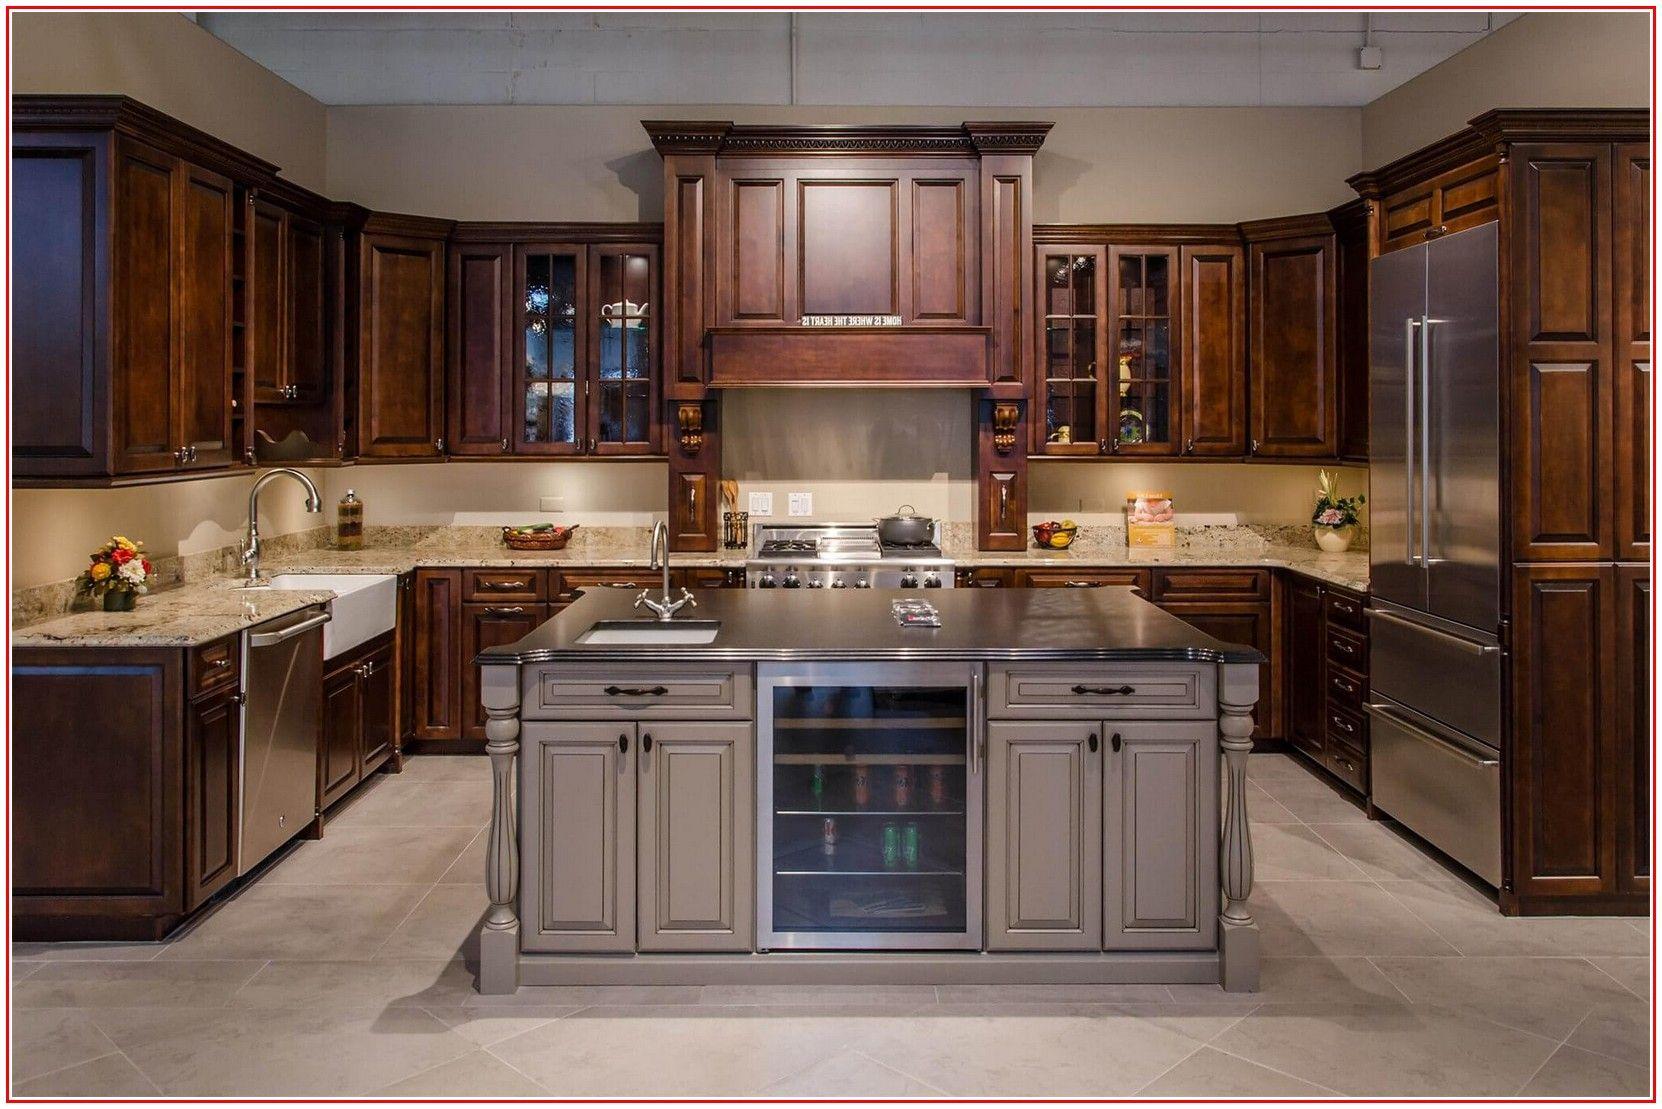 Kitchen Cabinet Showrooms Near Me In 2020 Kitchen Cabinets Showroom Kitchen And Bath Remodeling Kitchen Cabinets Prices